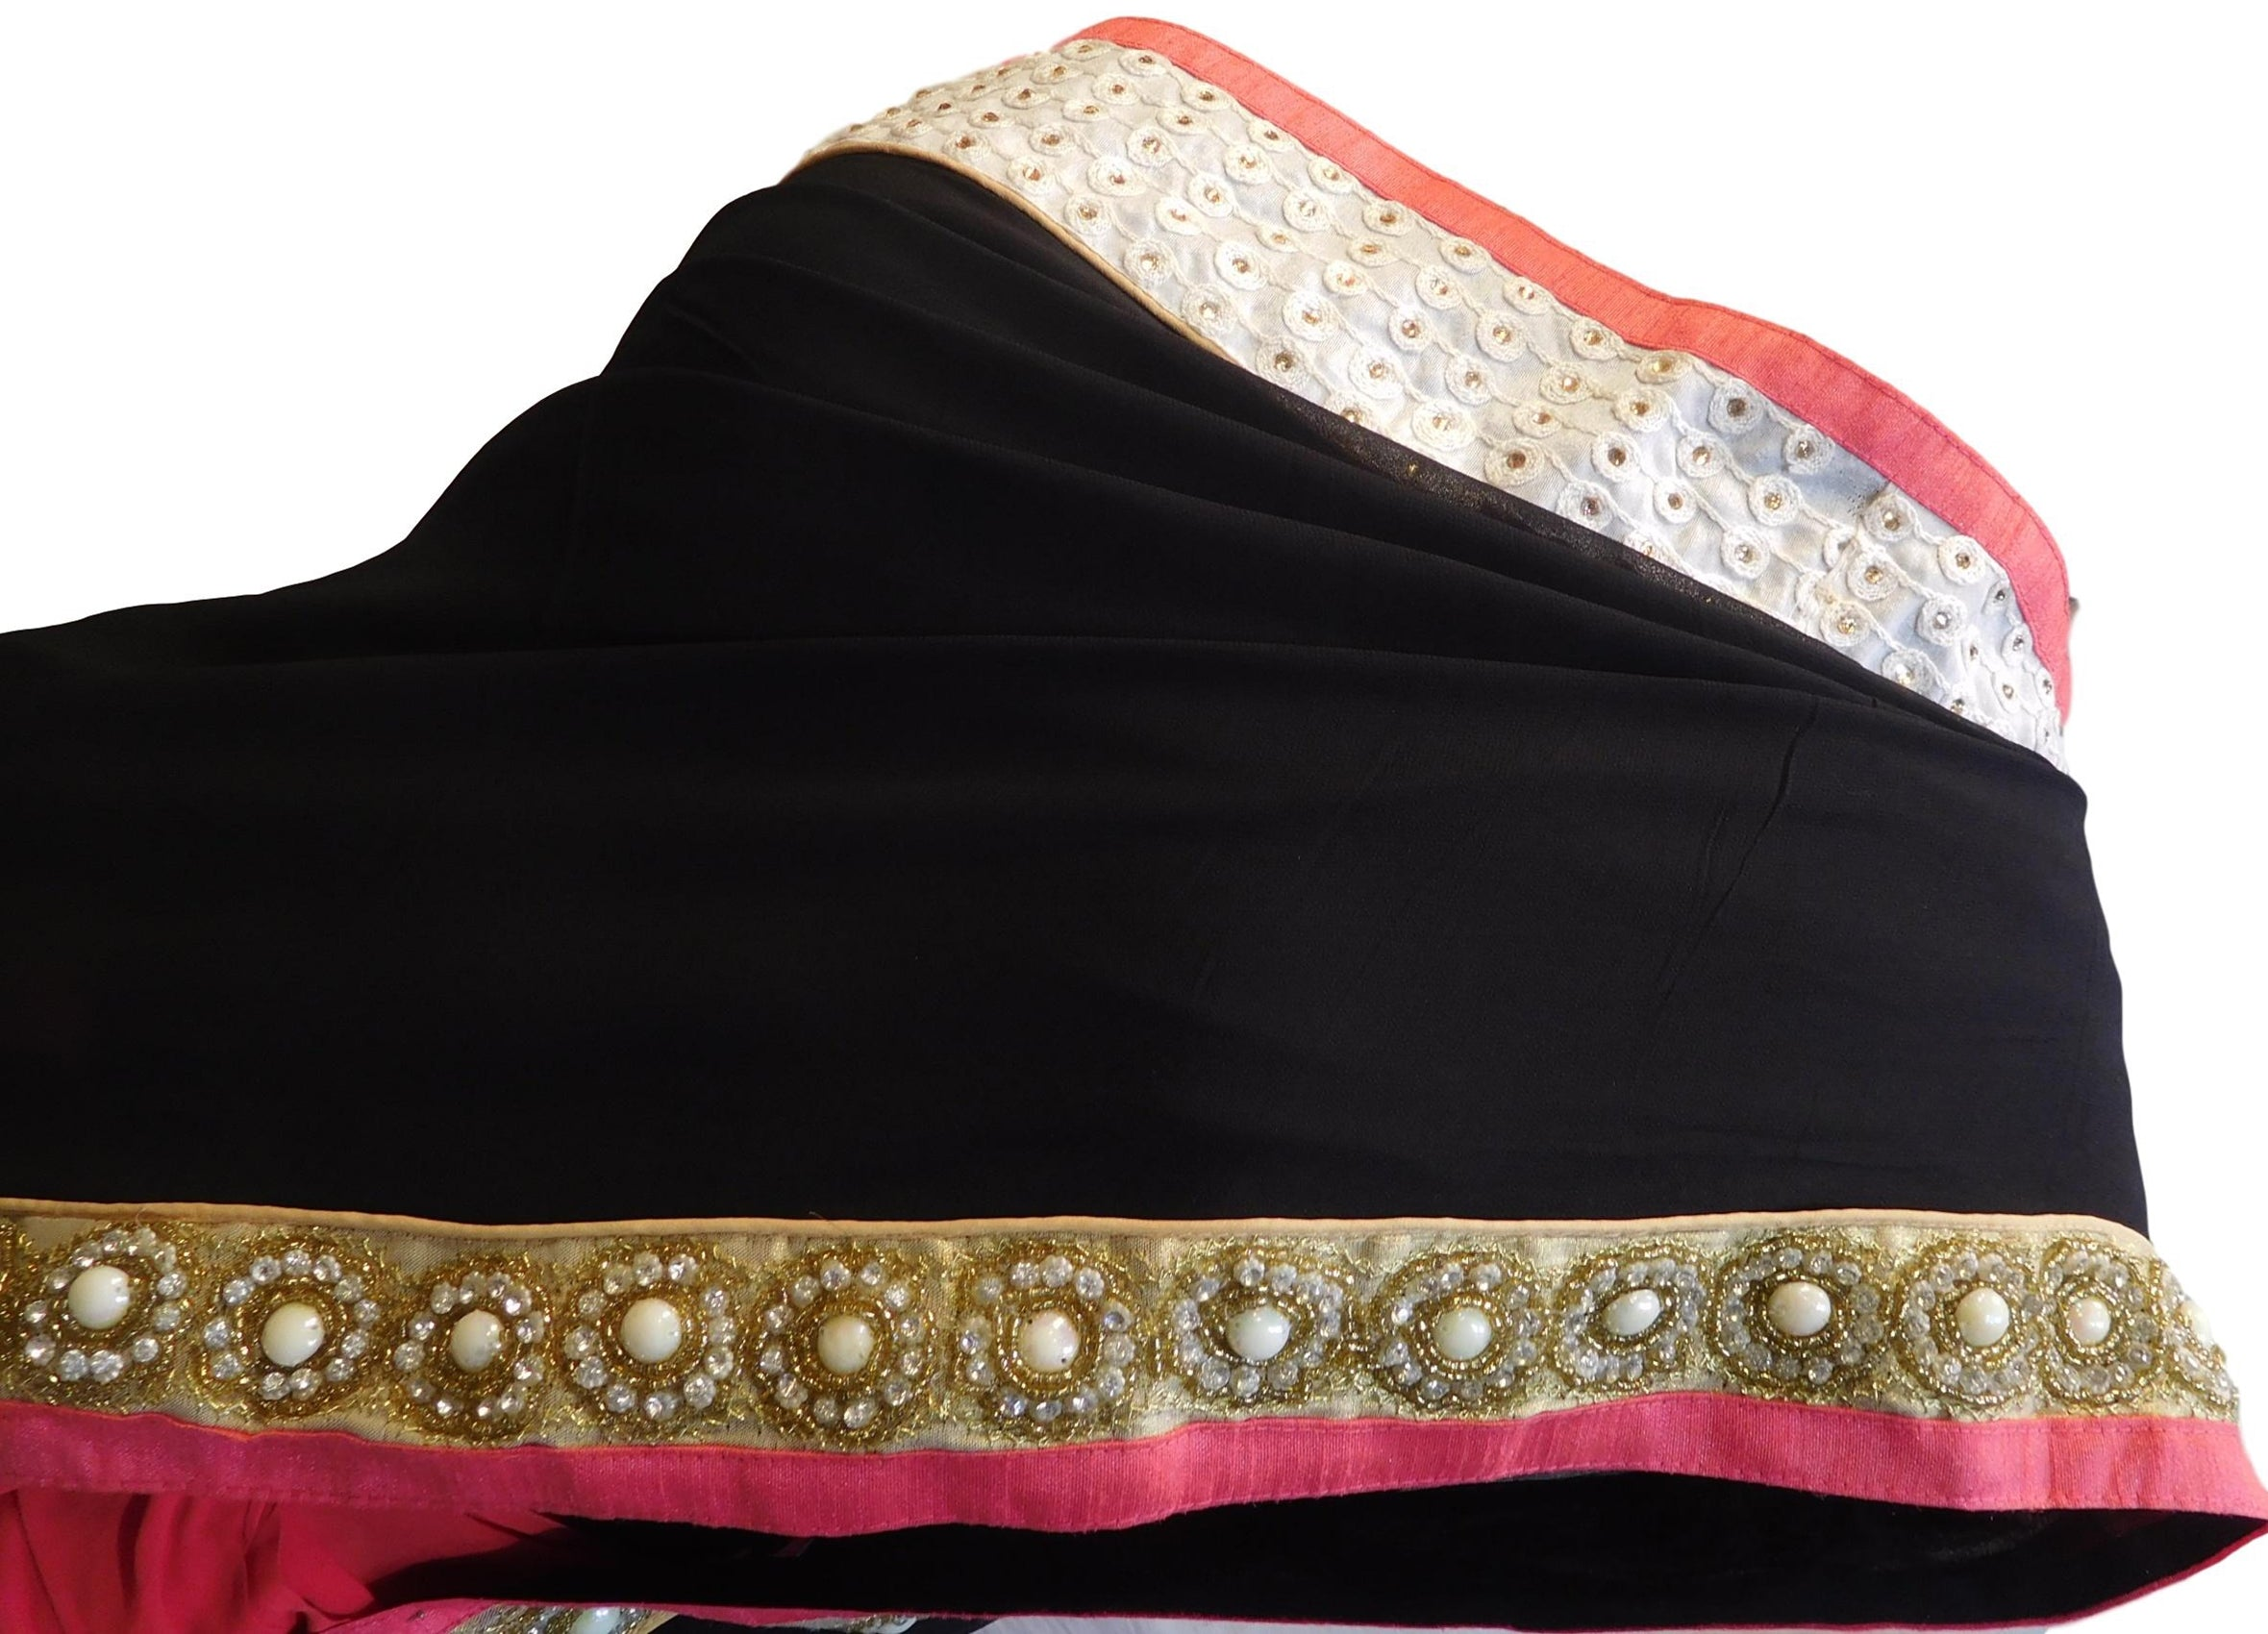 Black & Red Designer Wedding Partywear Georgette (Viscos) Thread Beads Pearl Stone Hand Embroidery Work Bridal Saree Sari E113